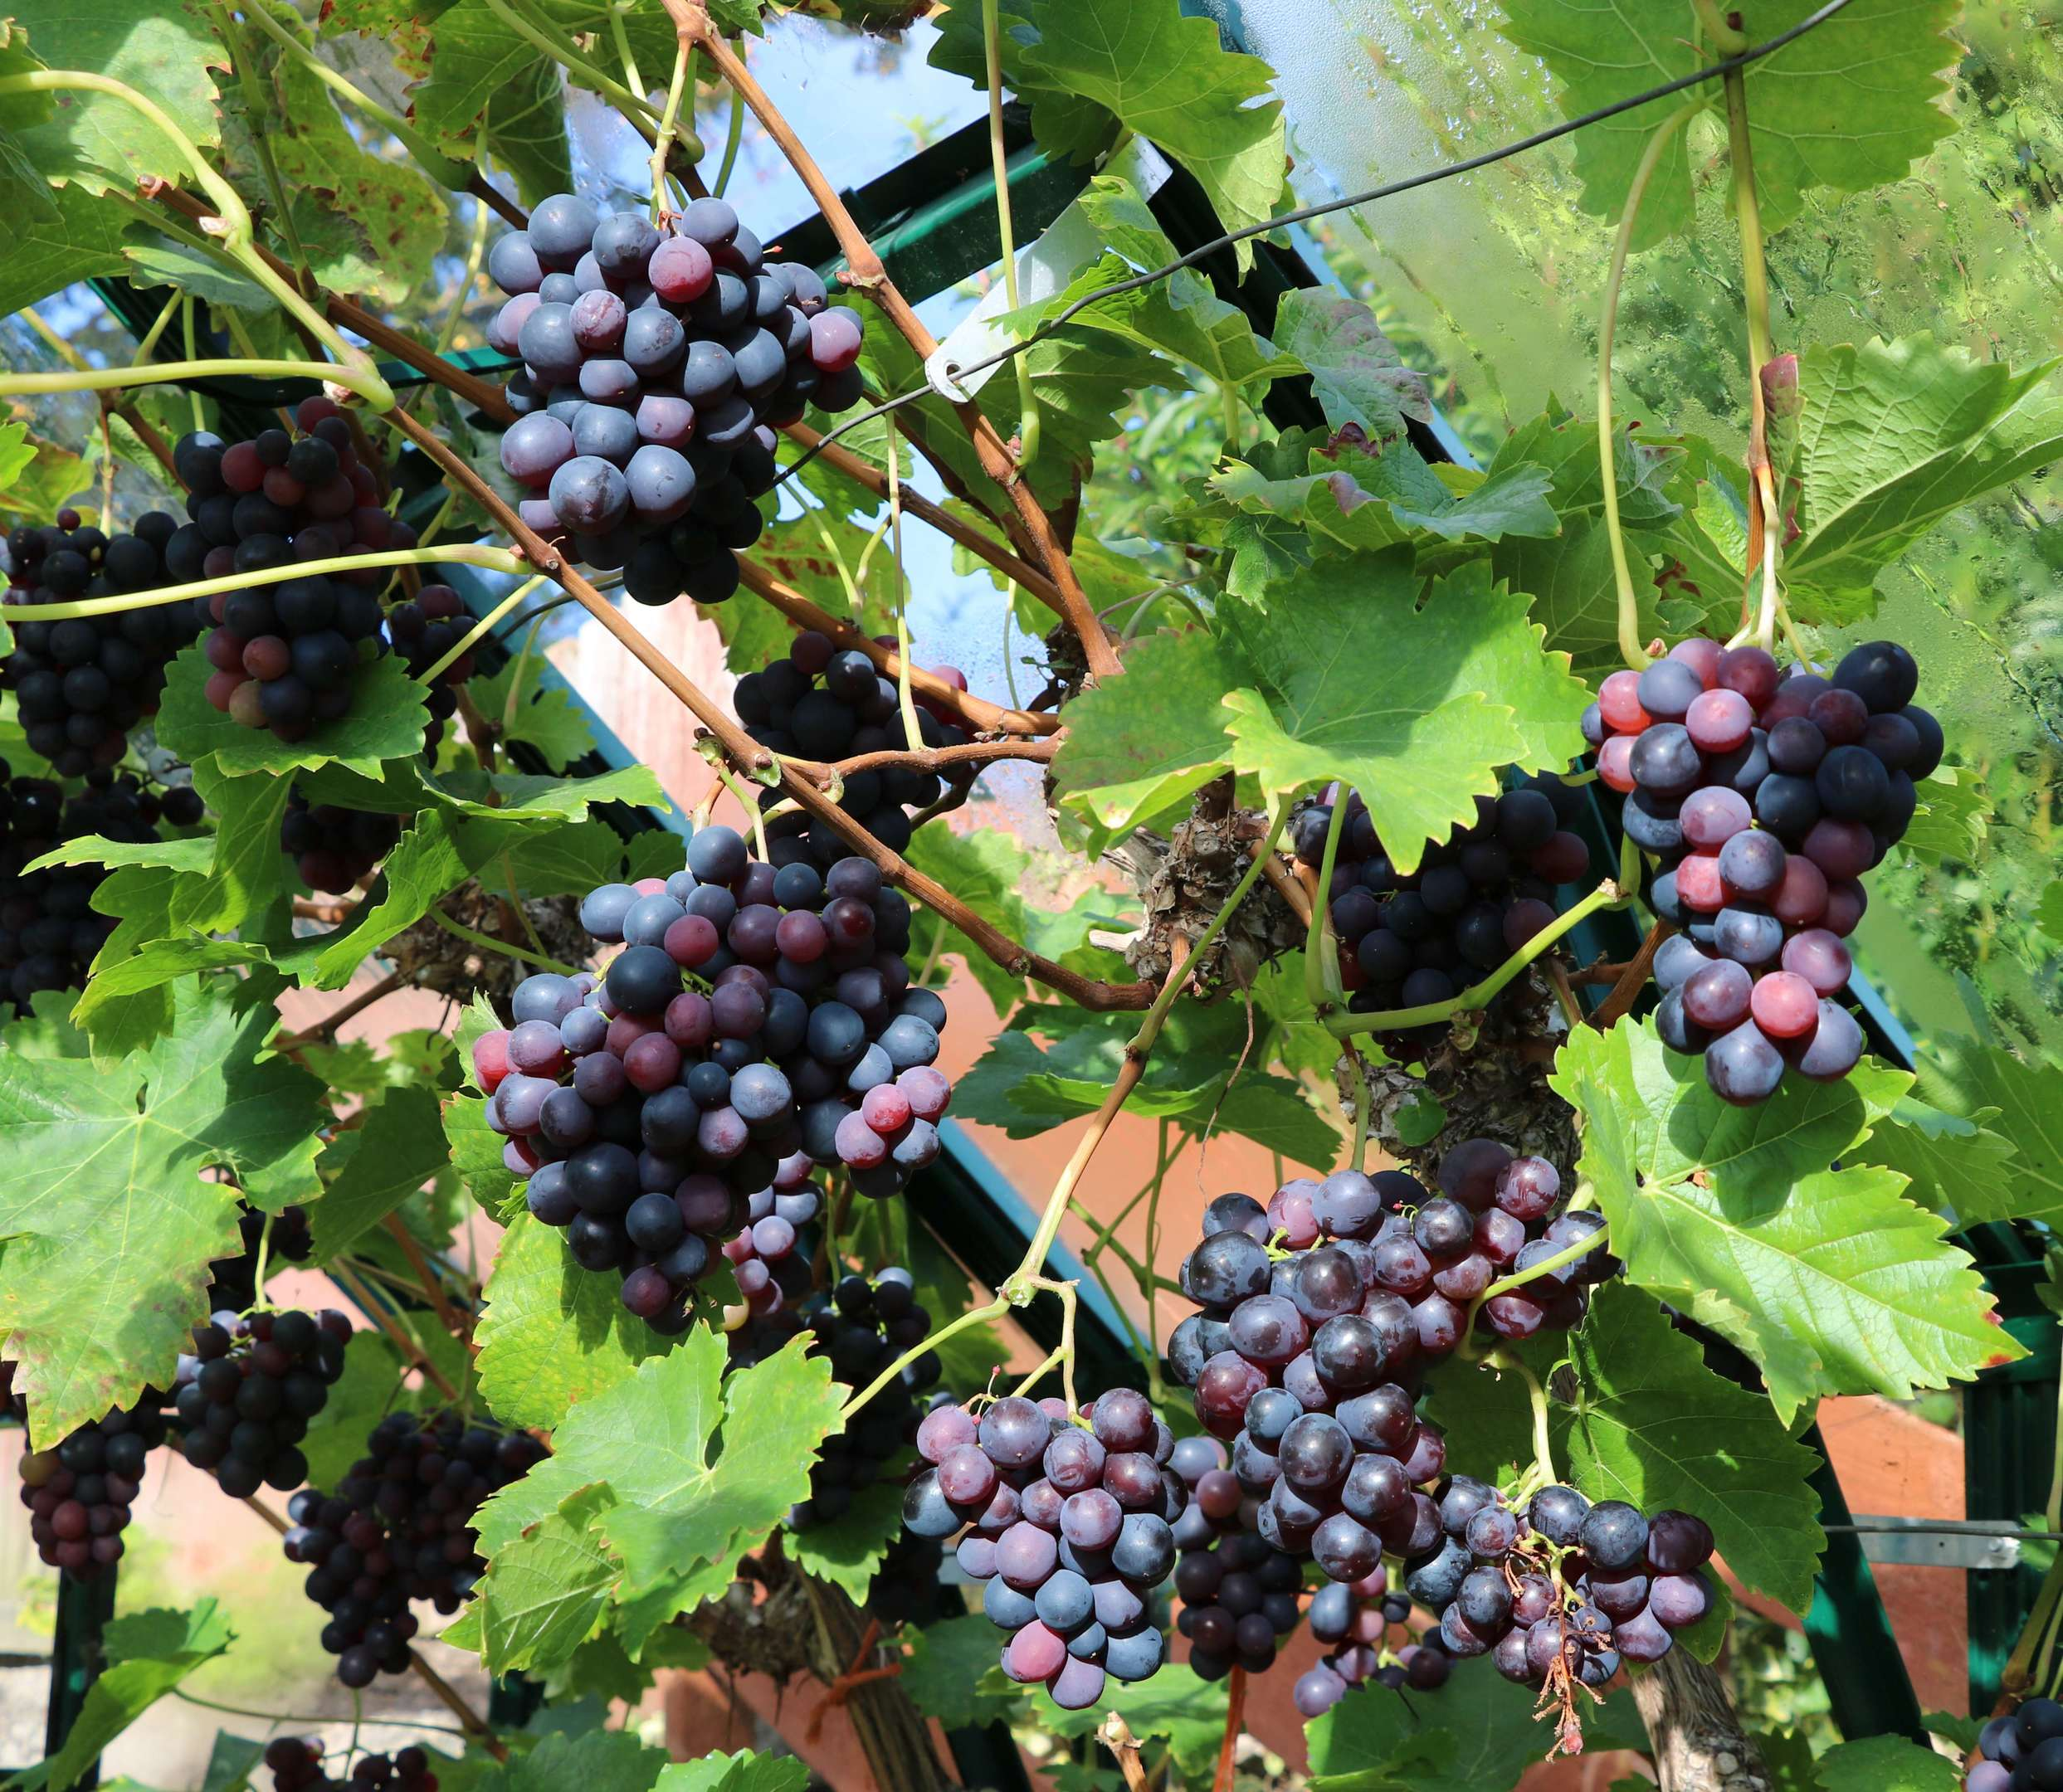 The challenge of grape growing - The Courier